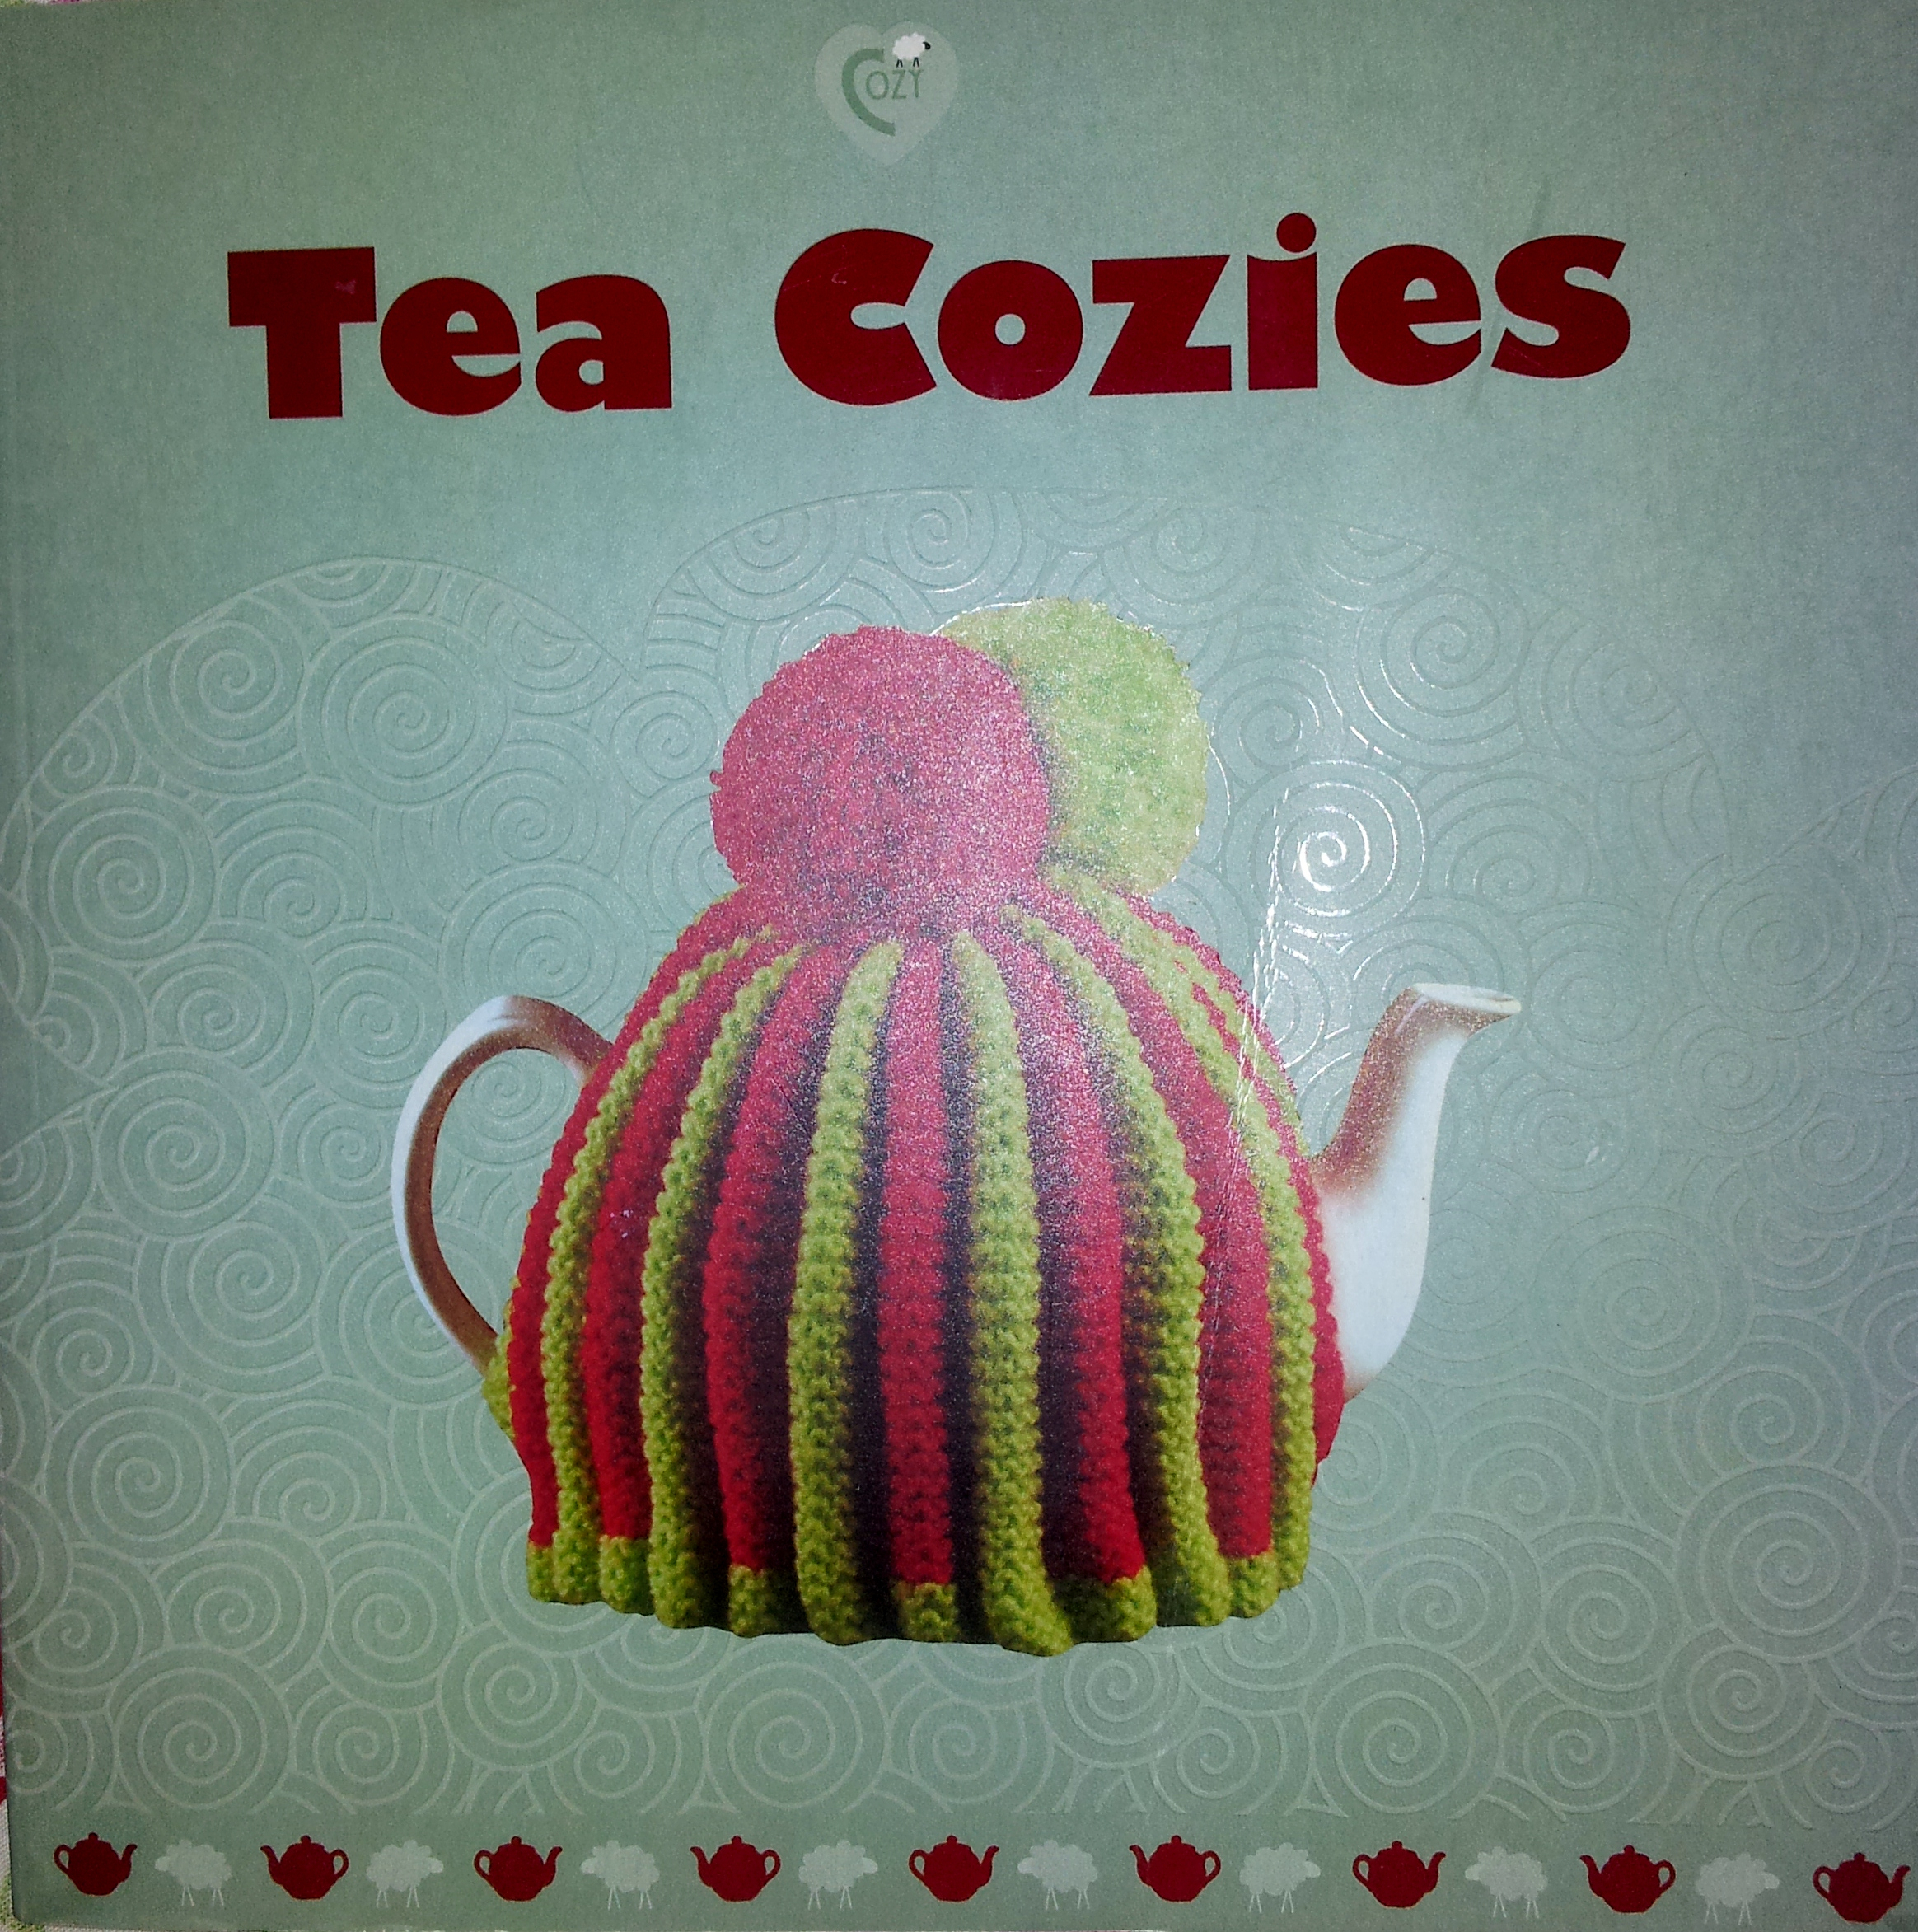 Tea Cozy Patterns To Knit My Vintage Style Knitted Tea Cosy Cozy Thestitchsharer